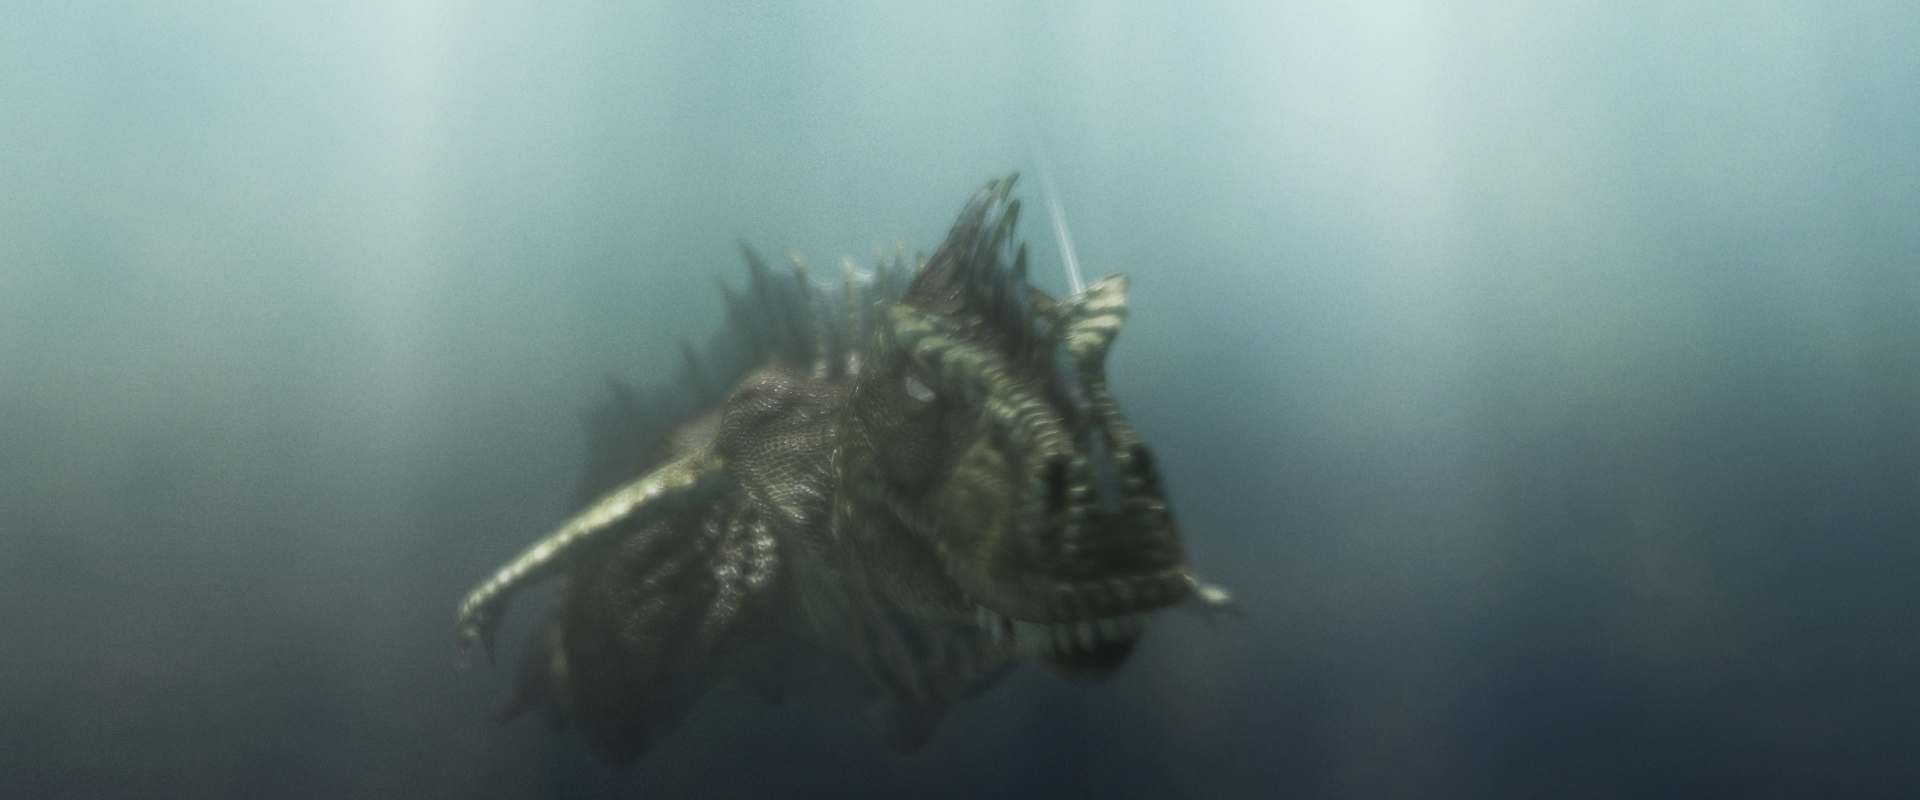 Poseidon Rex background 1